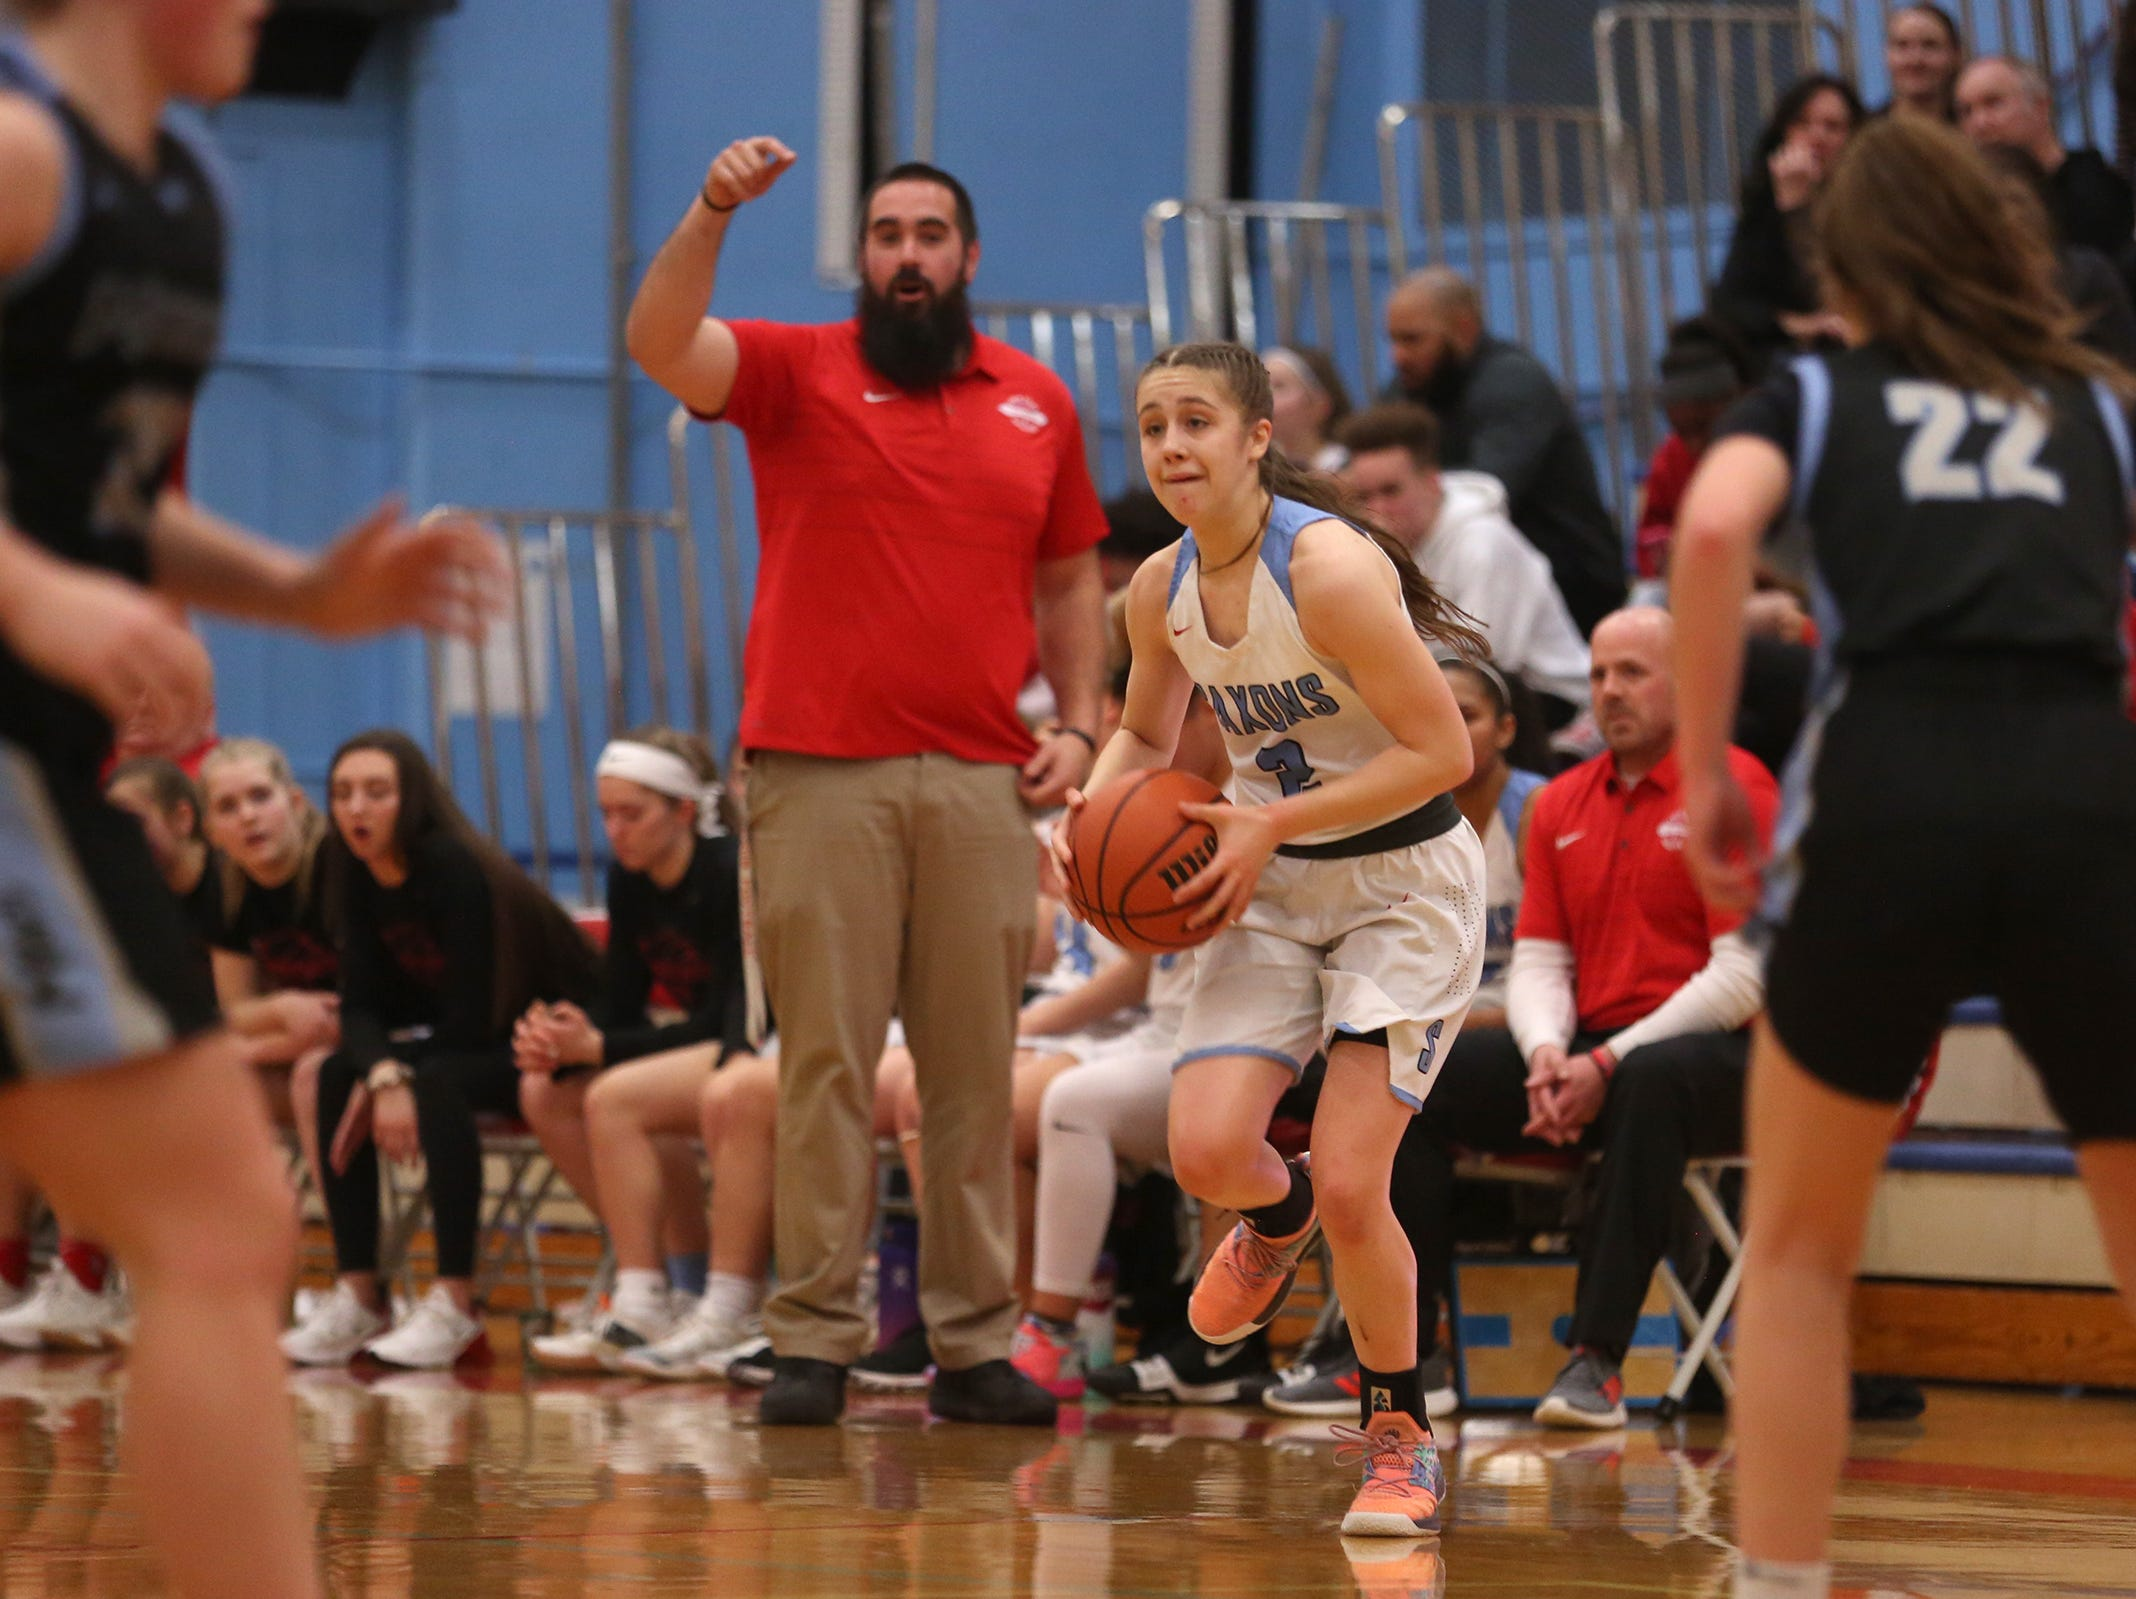 South Salem's Hilary James (2) looks to make a pass during the South Salem vs. Mountainside girls basketball OSAA playoff game in Salem on Thursday, Feb. 28, 2019.